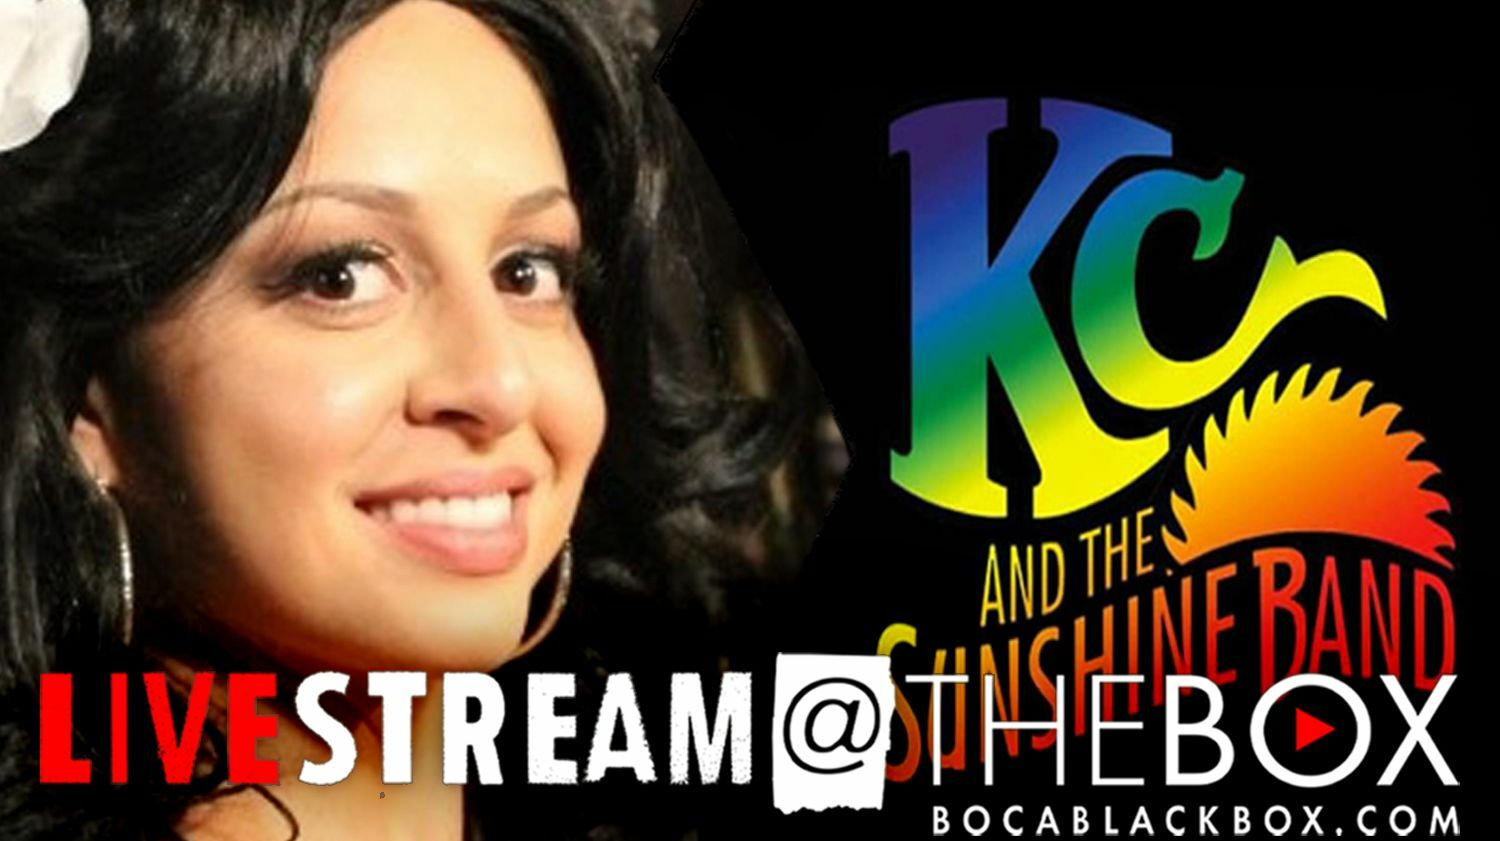 """Music of DONNA SUMMER & KC AND THE SUNSHINE BAND: """"Livestream @ The Box"""""""